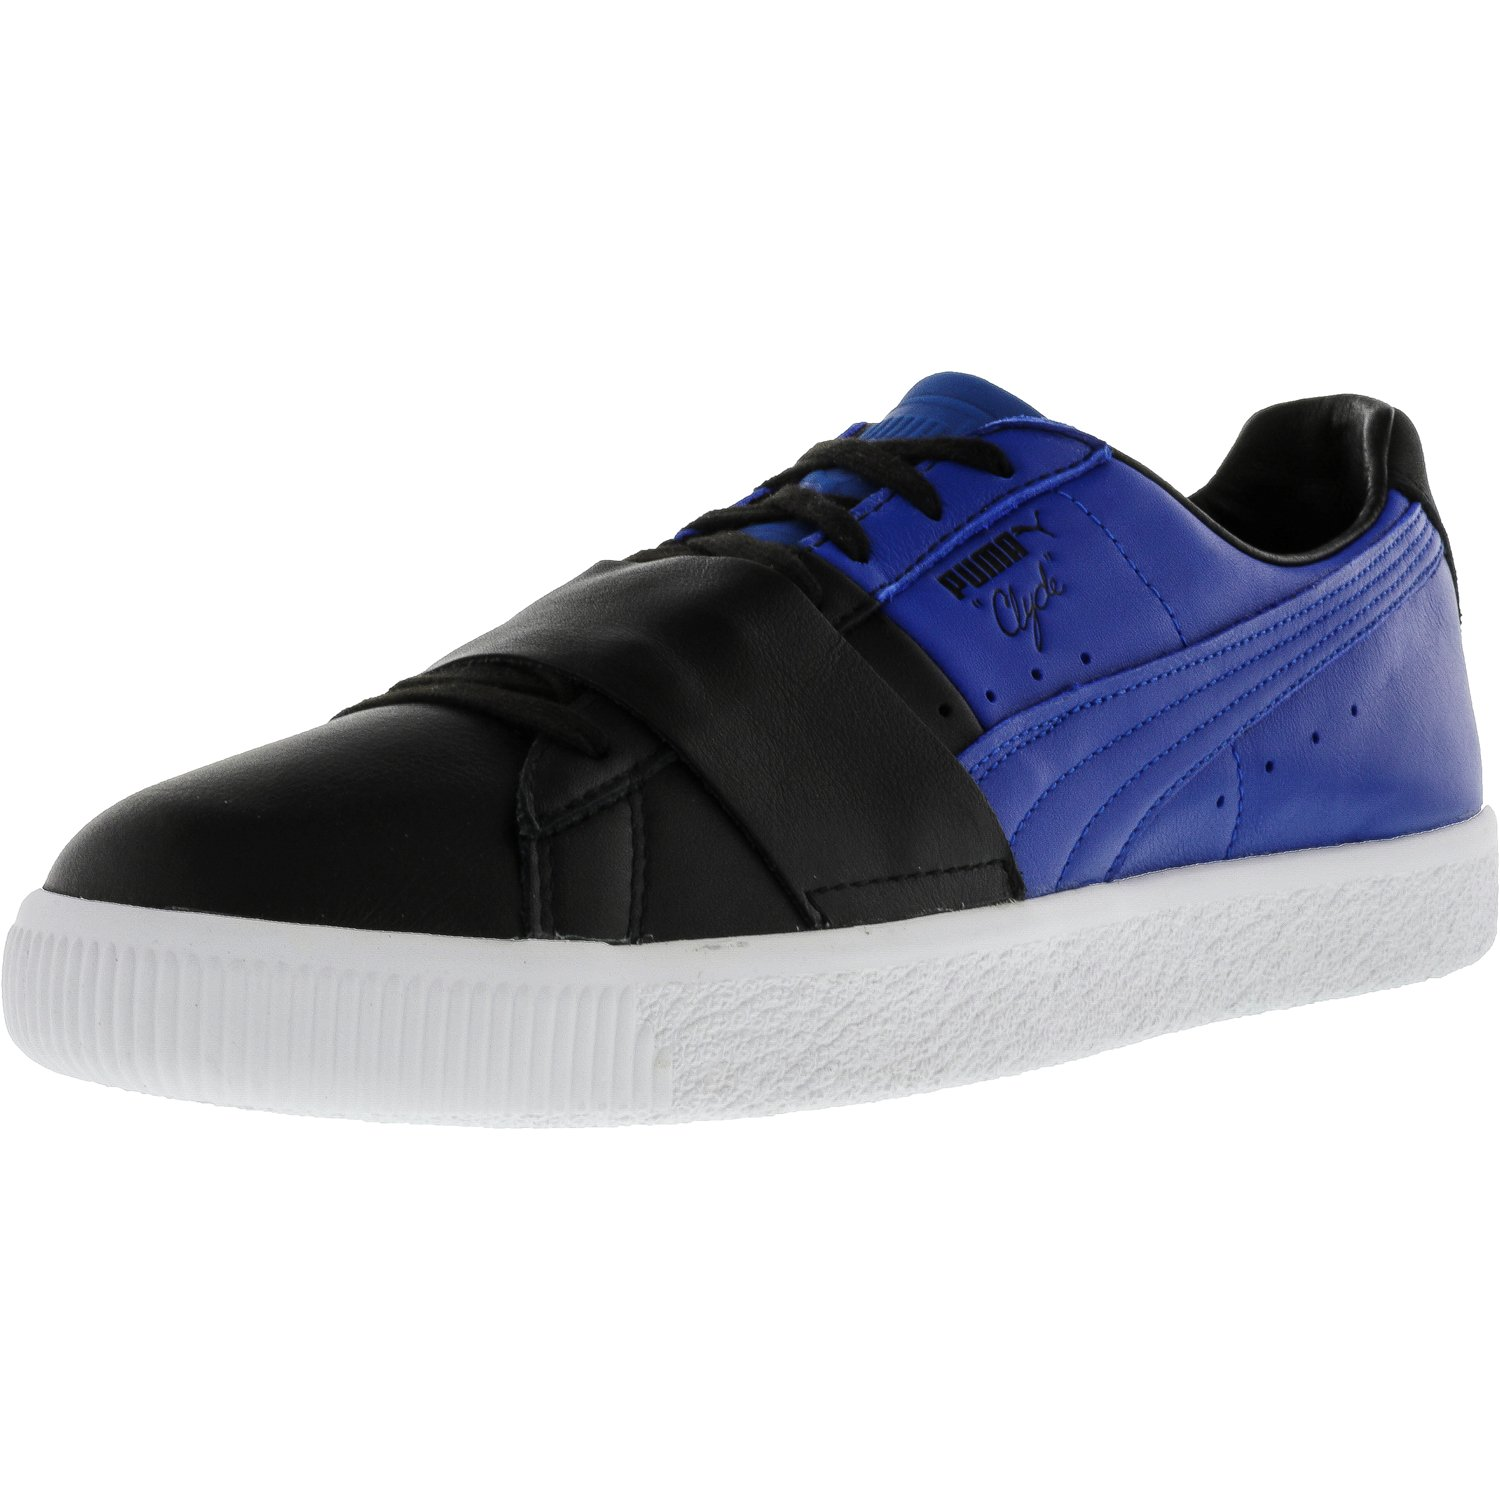 PUMA Men's Clyde Color Block 1 Black/Lapis Blue Athletic Shoe VcdnDol2